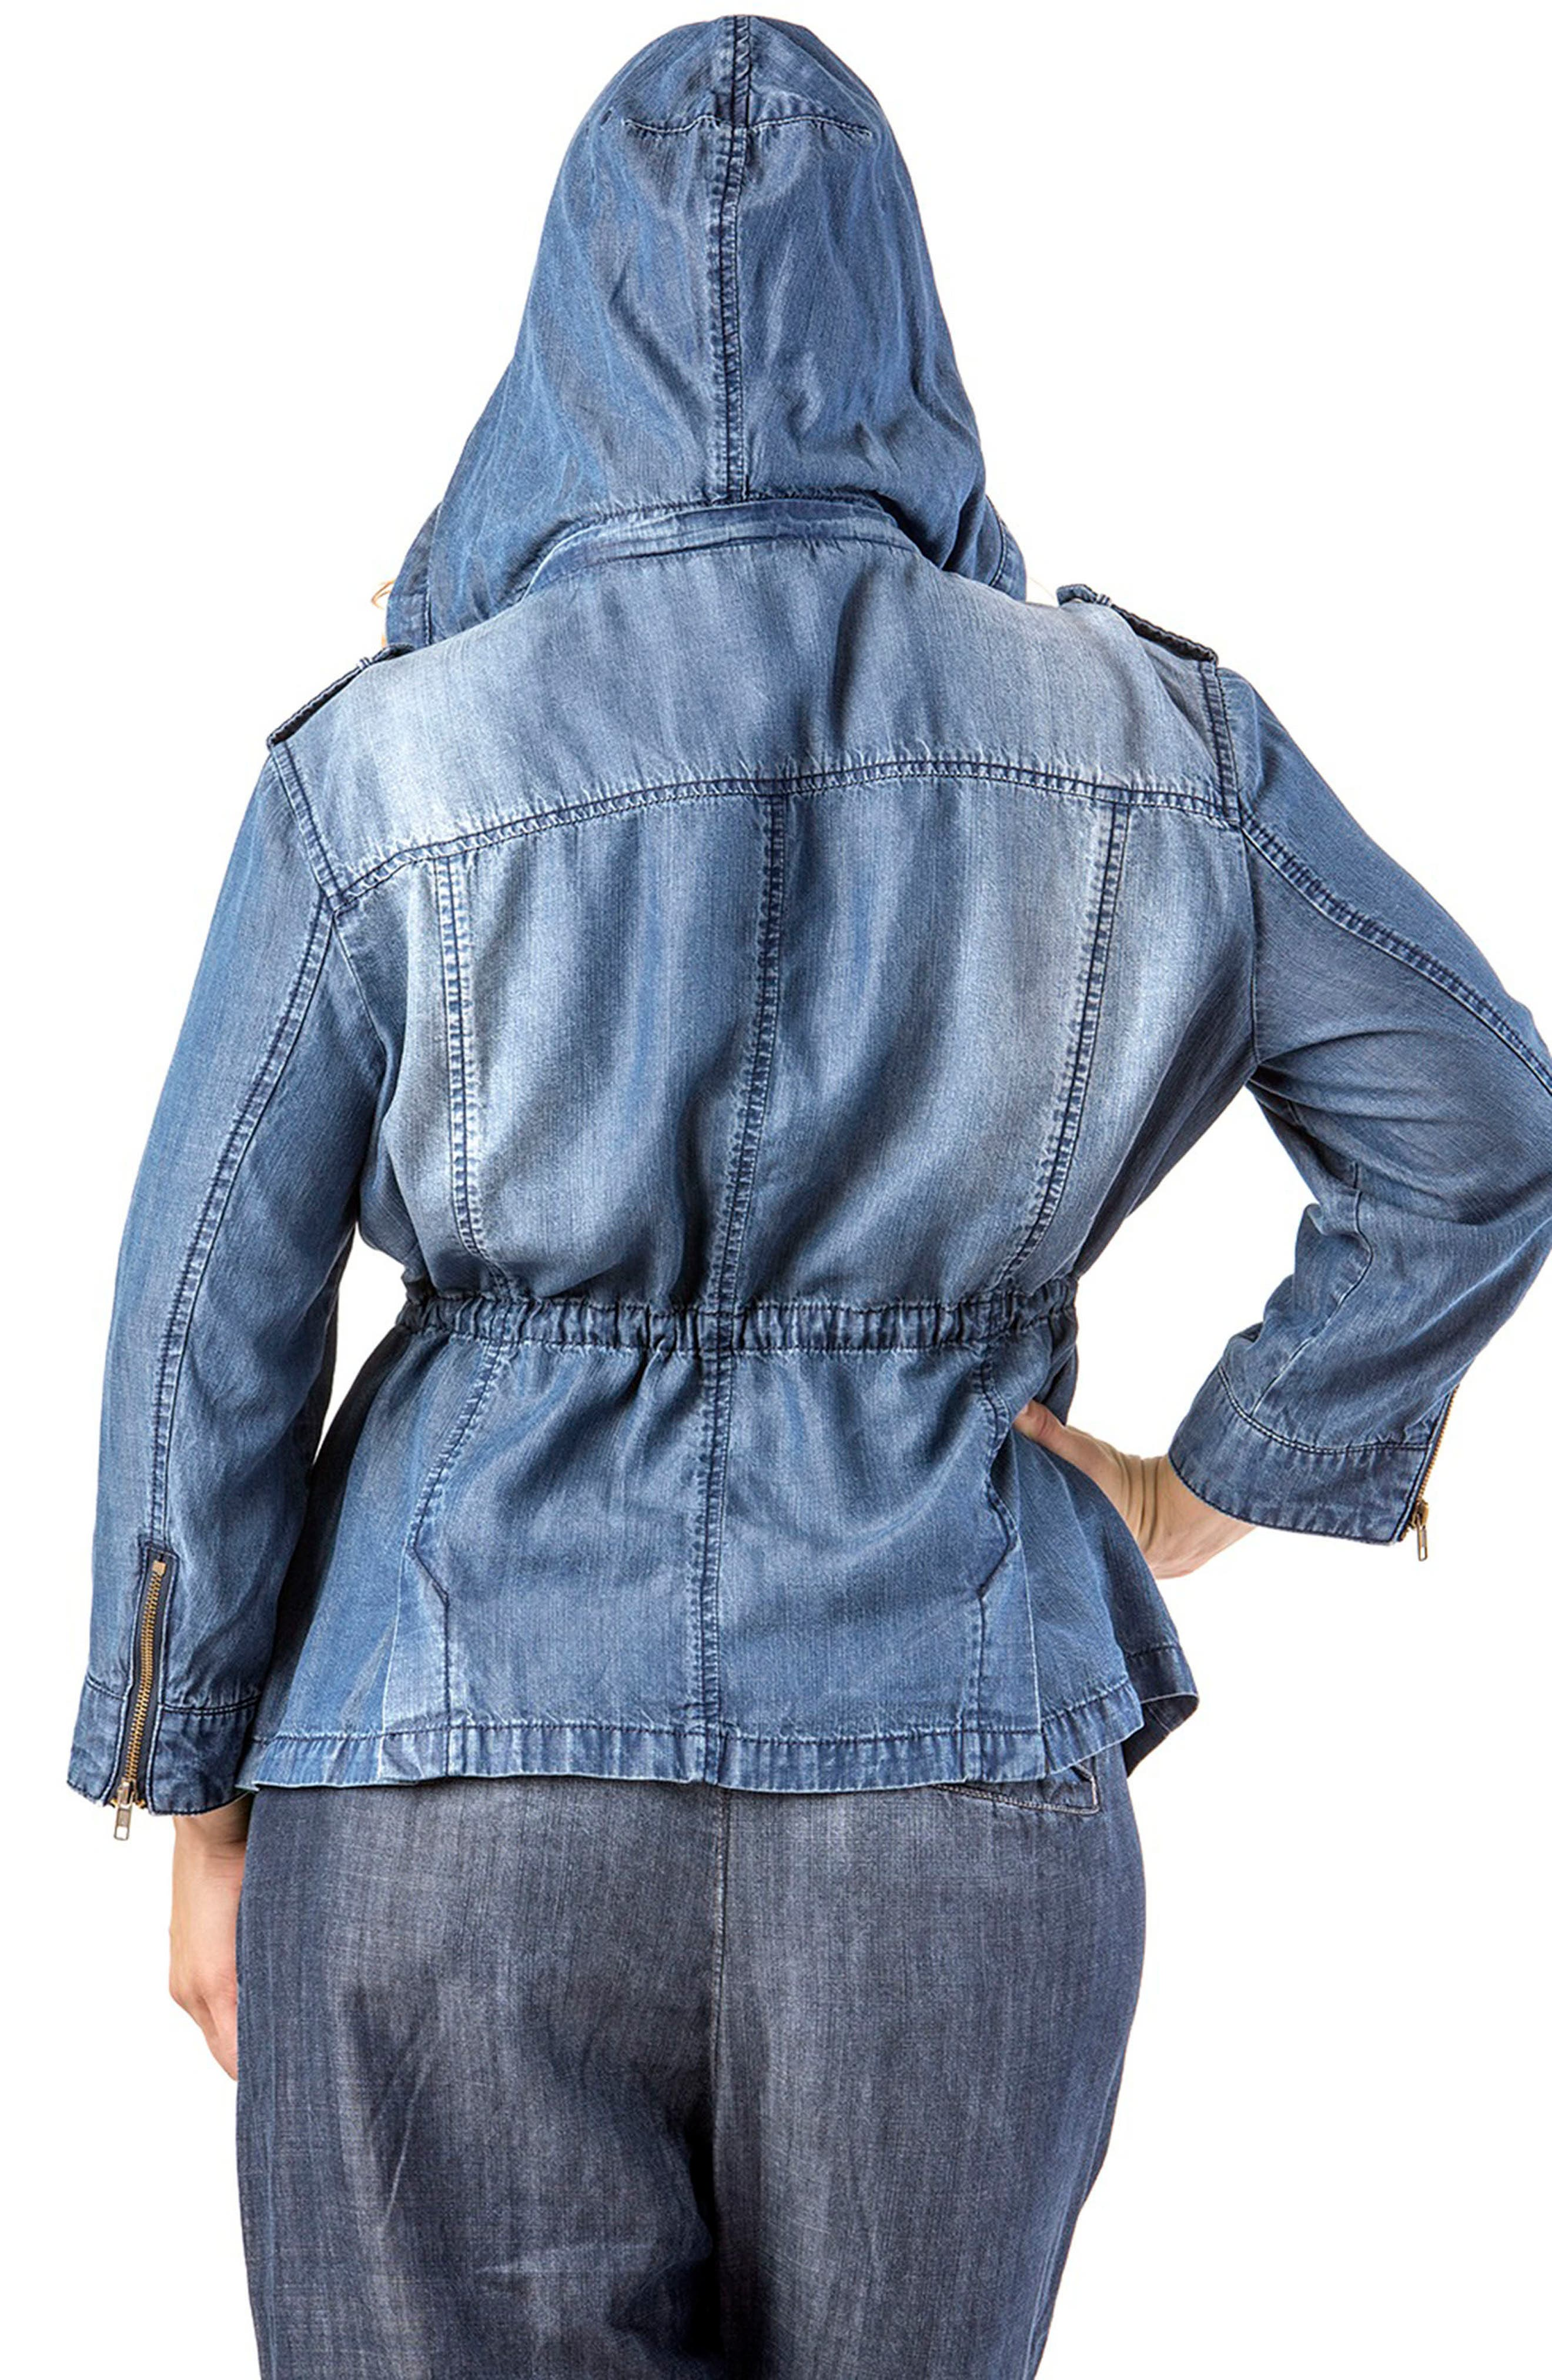 STANDARDS & PRACTICES, Abby Zip Front Hooded Denim Jacket, Alternate thumbnail 2, color, BLUE